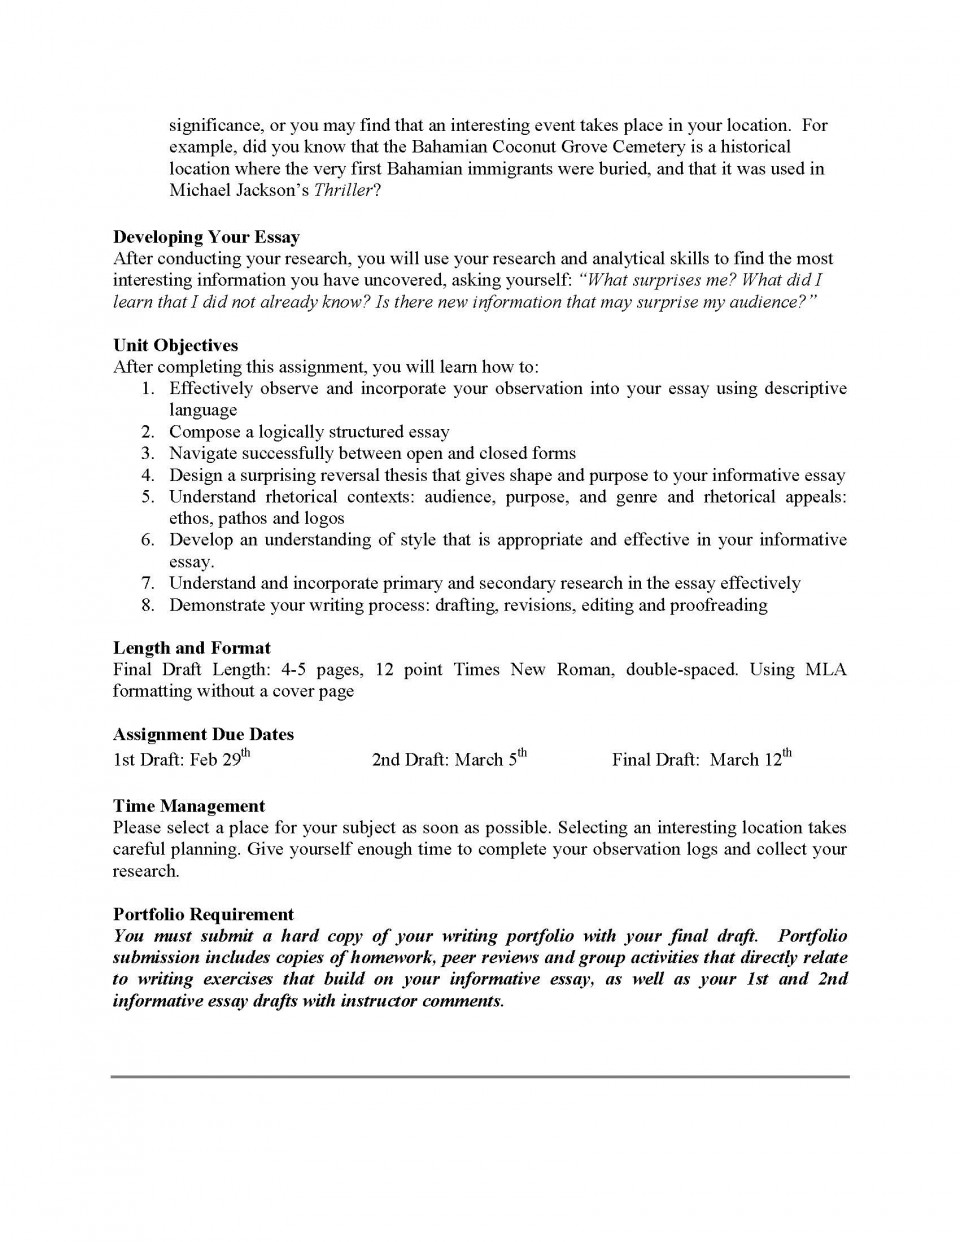 014 Informative Essay Unit Assignment Page 2 Dreaded Graphic Organizer Prompts Middle School 3rd Grade 960